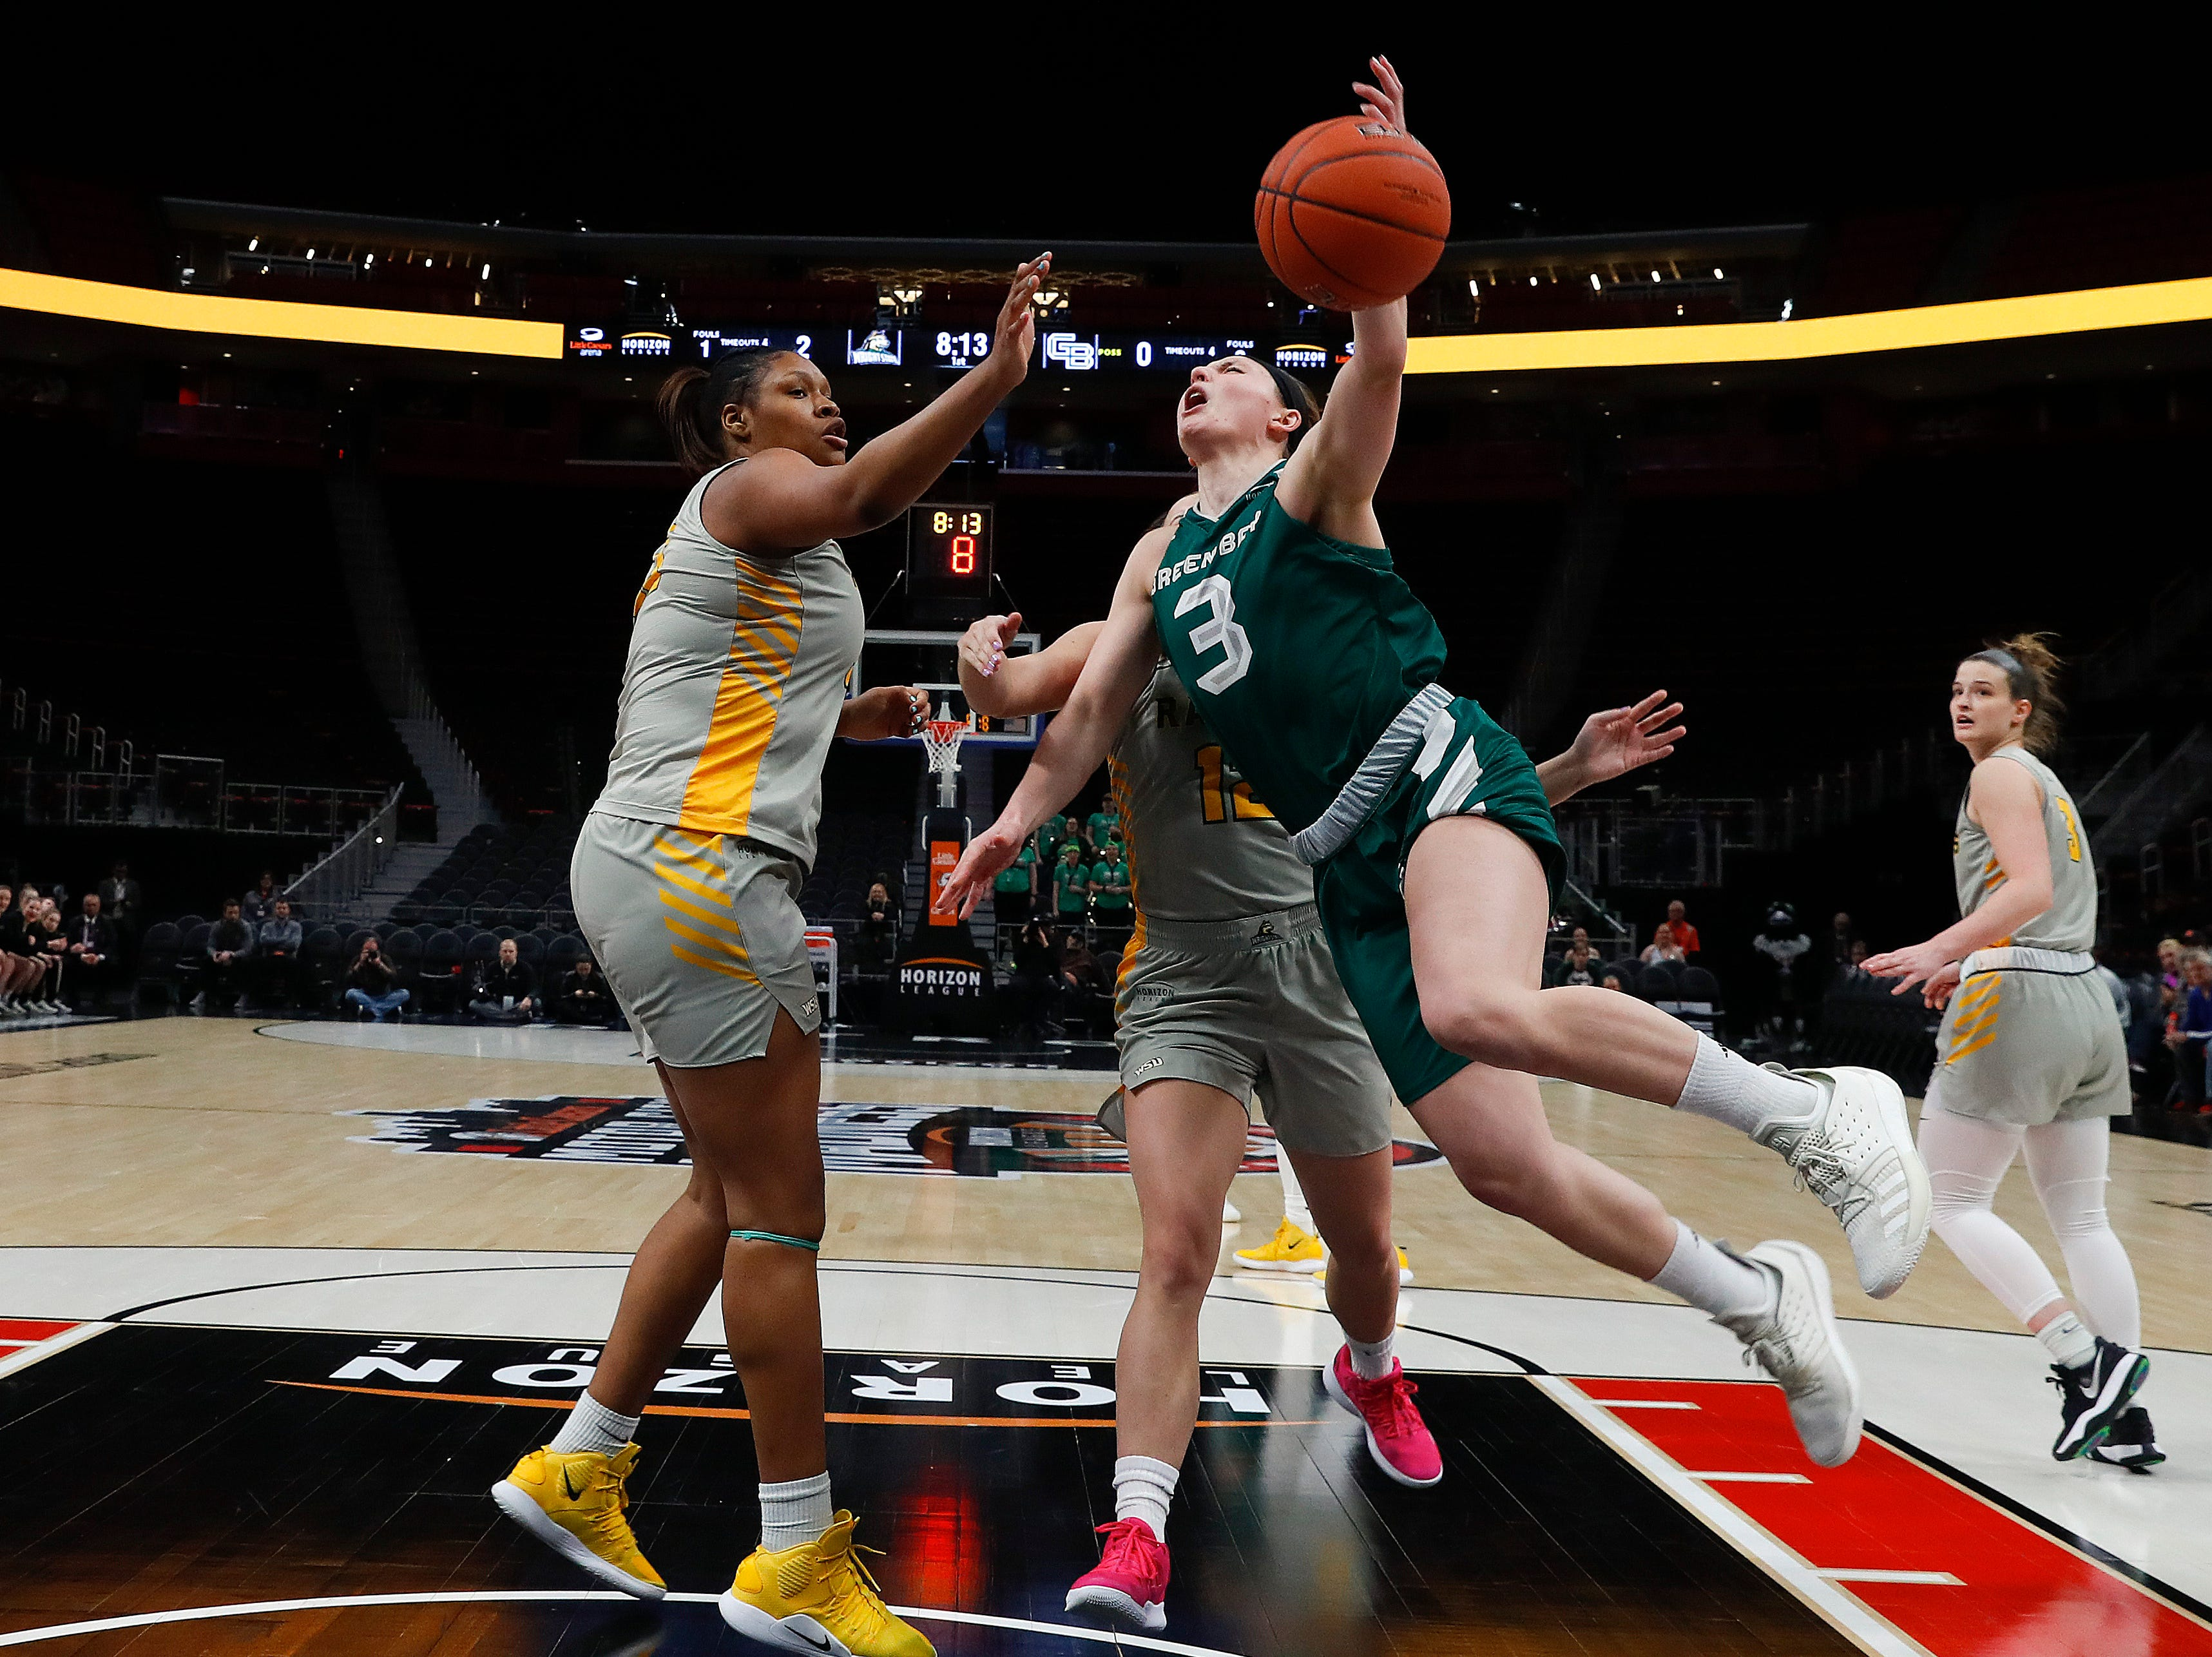 Green Bay guard Frankie Wurtz (3) drives on Wright State center Tyler Frierson (33) in the first half.